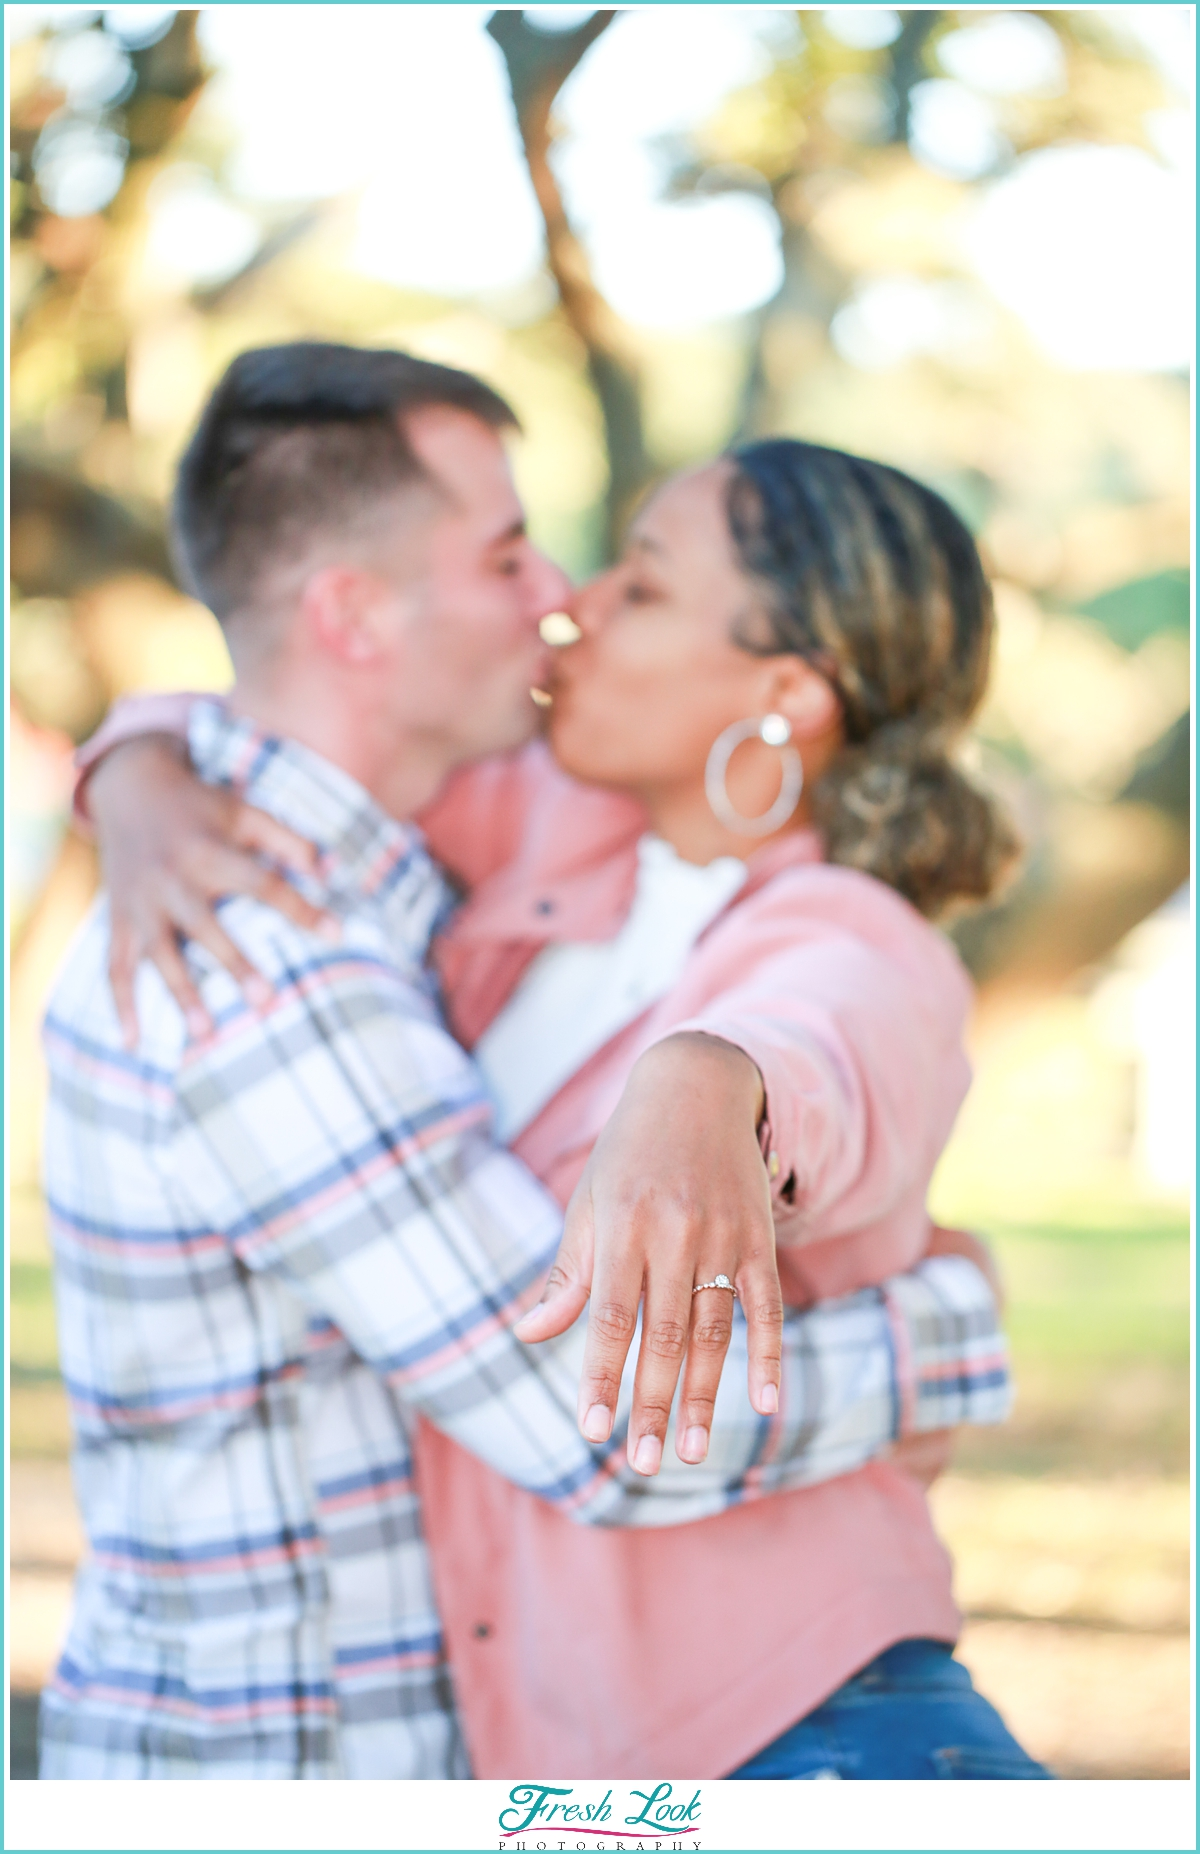 Show me your ring photo ideas